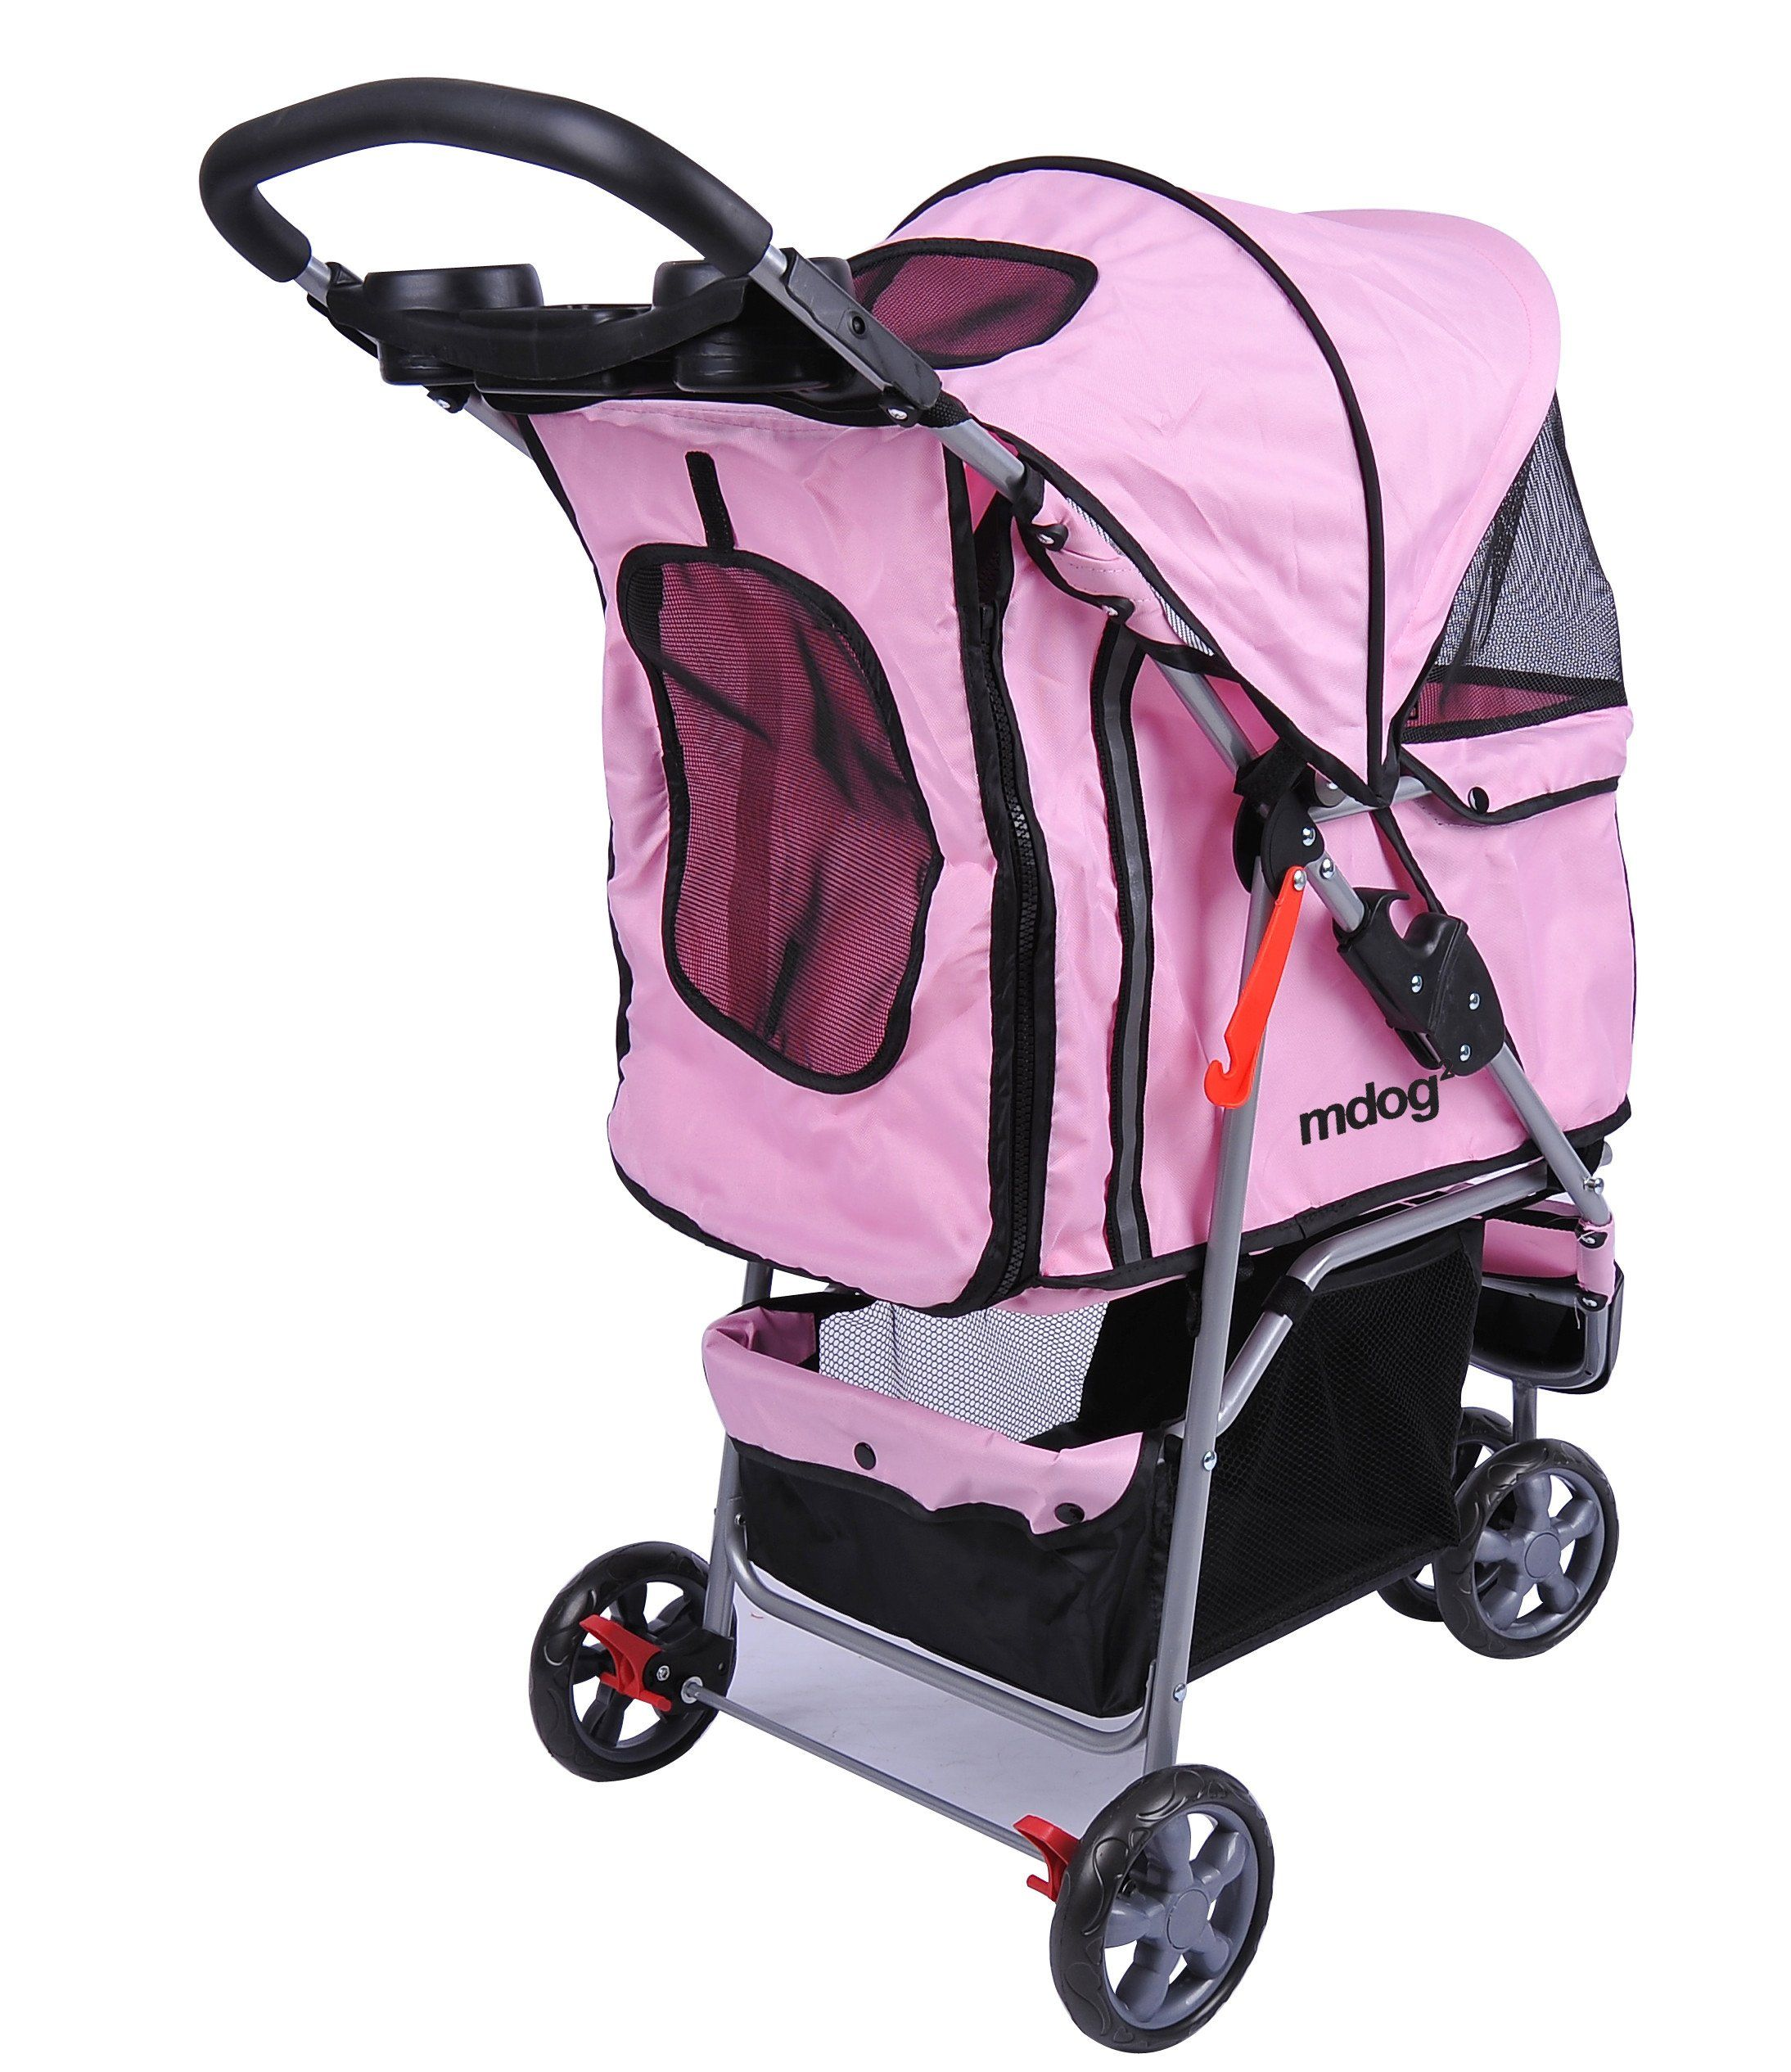 MDOG2 MK0015A 3Wheel Front and Rear Entry Pet Stroller